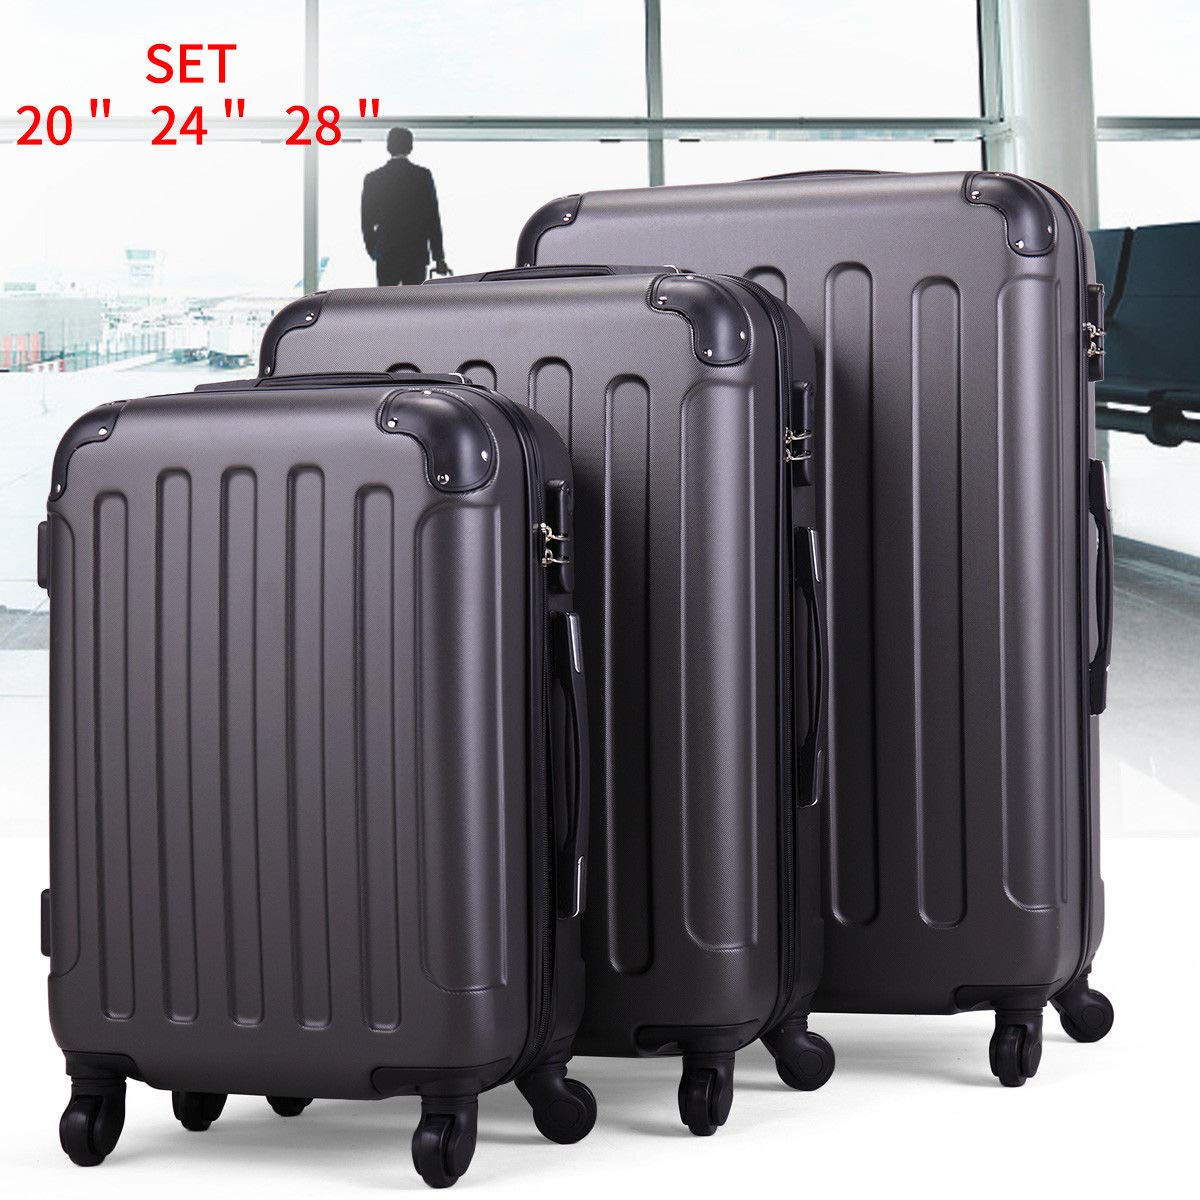 Travel Set Bag ABS+PC Handle Metal Trolley Suitcase Firm Coded Lock Gray Luggage 3 Pcs.